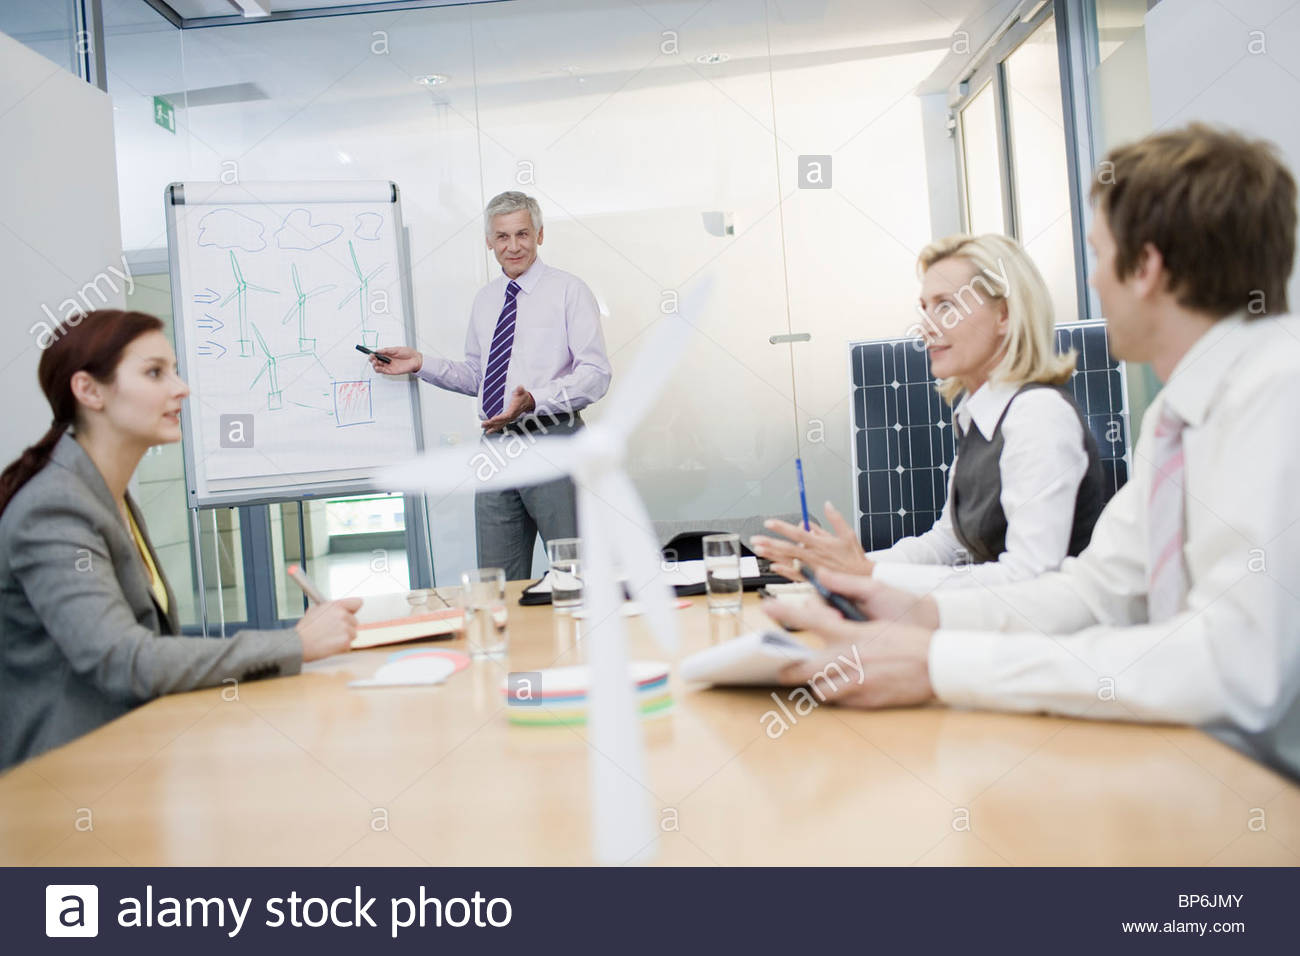 Four businesspeople discussing an alternative energy project - Stock Image